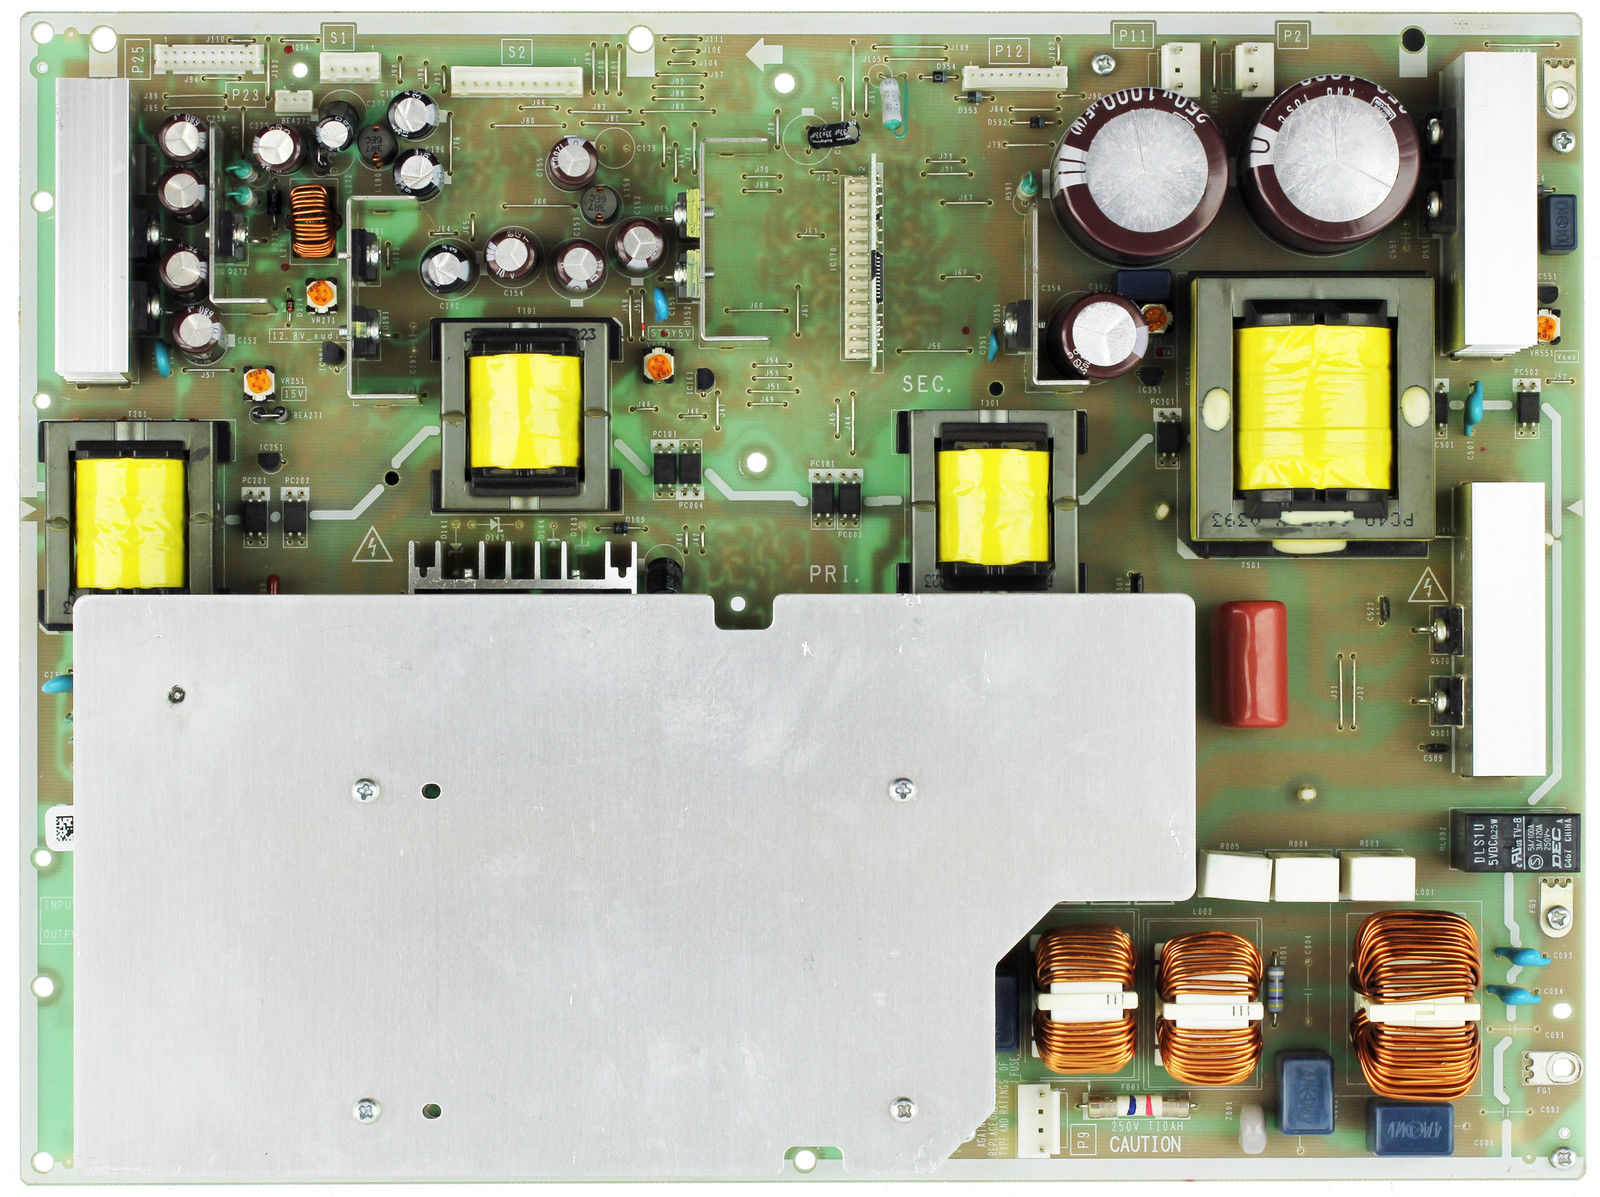 Panasonic MPF7712 (PCPF0149) Power Supply Unit